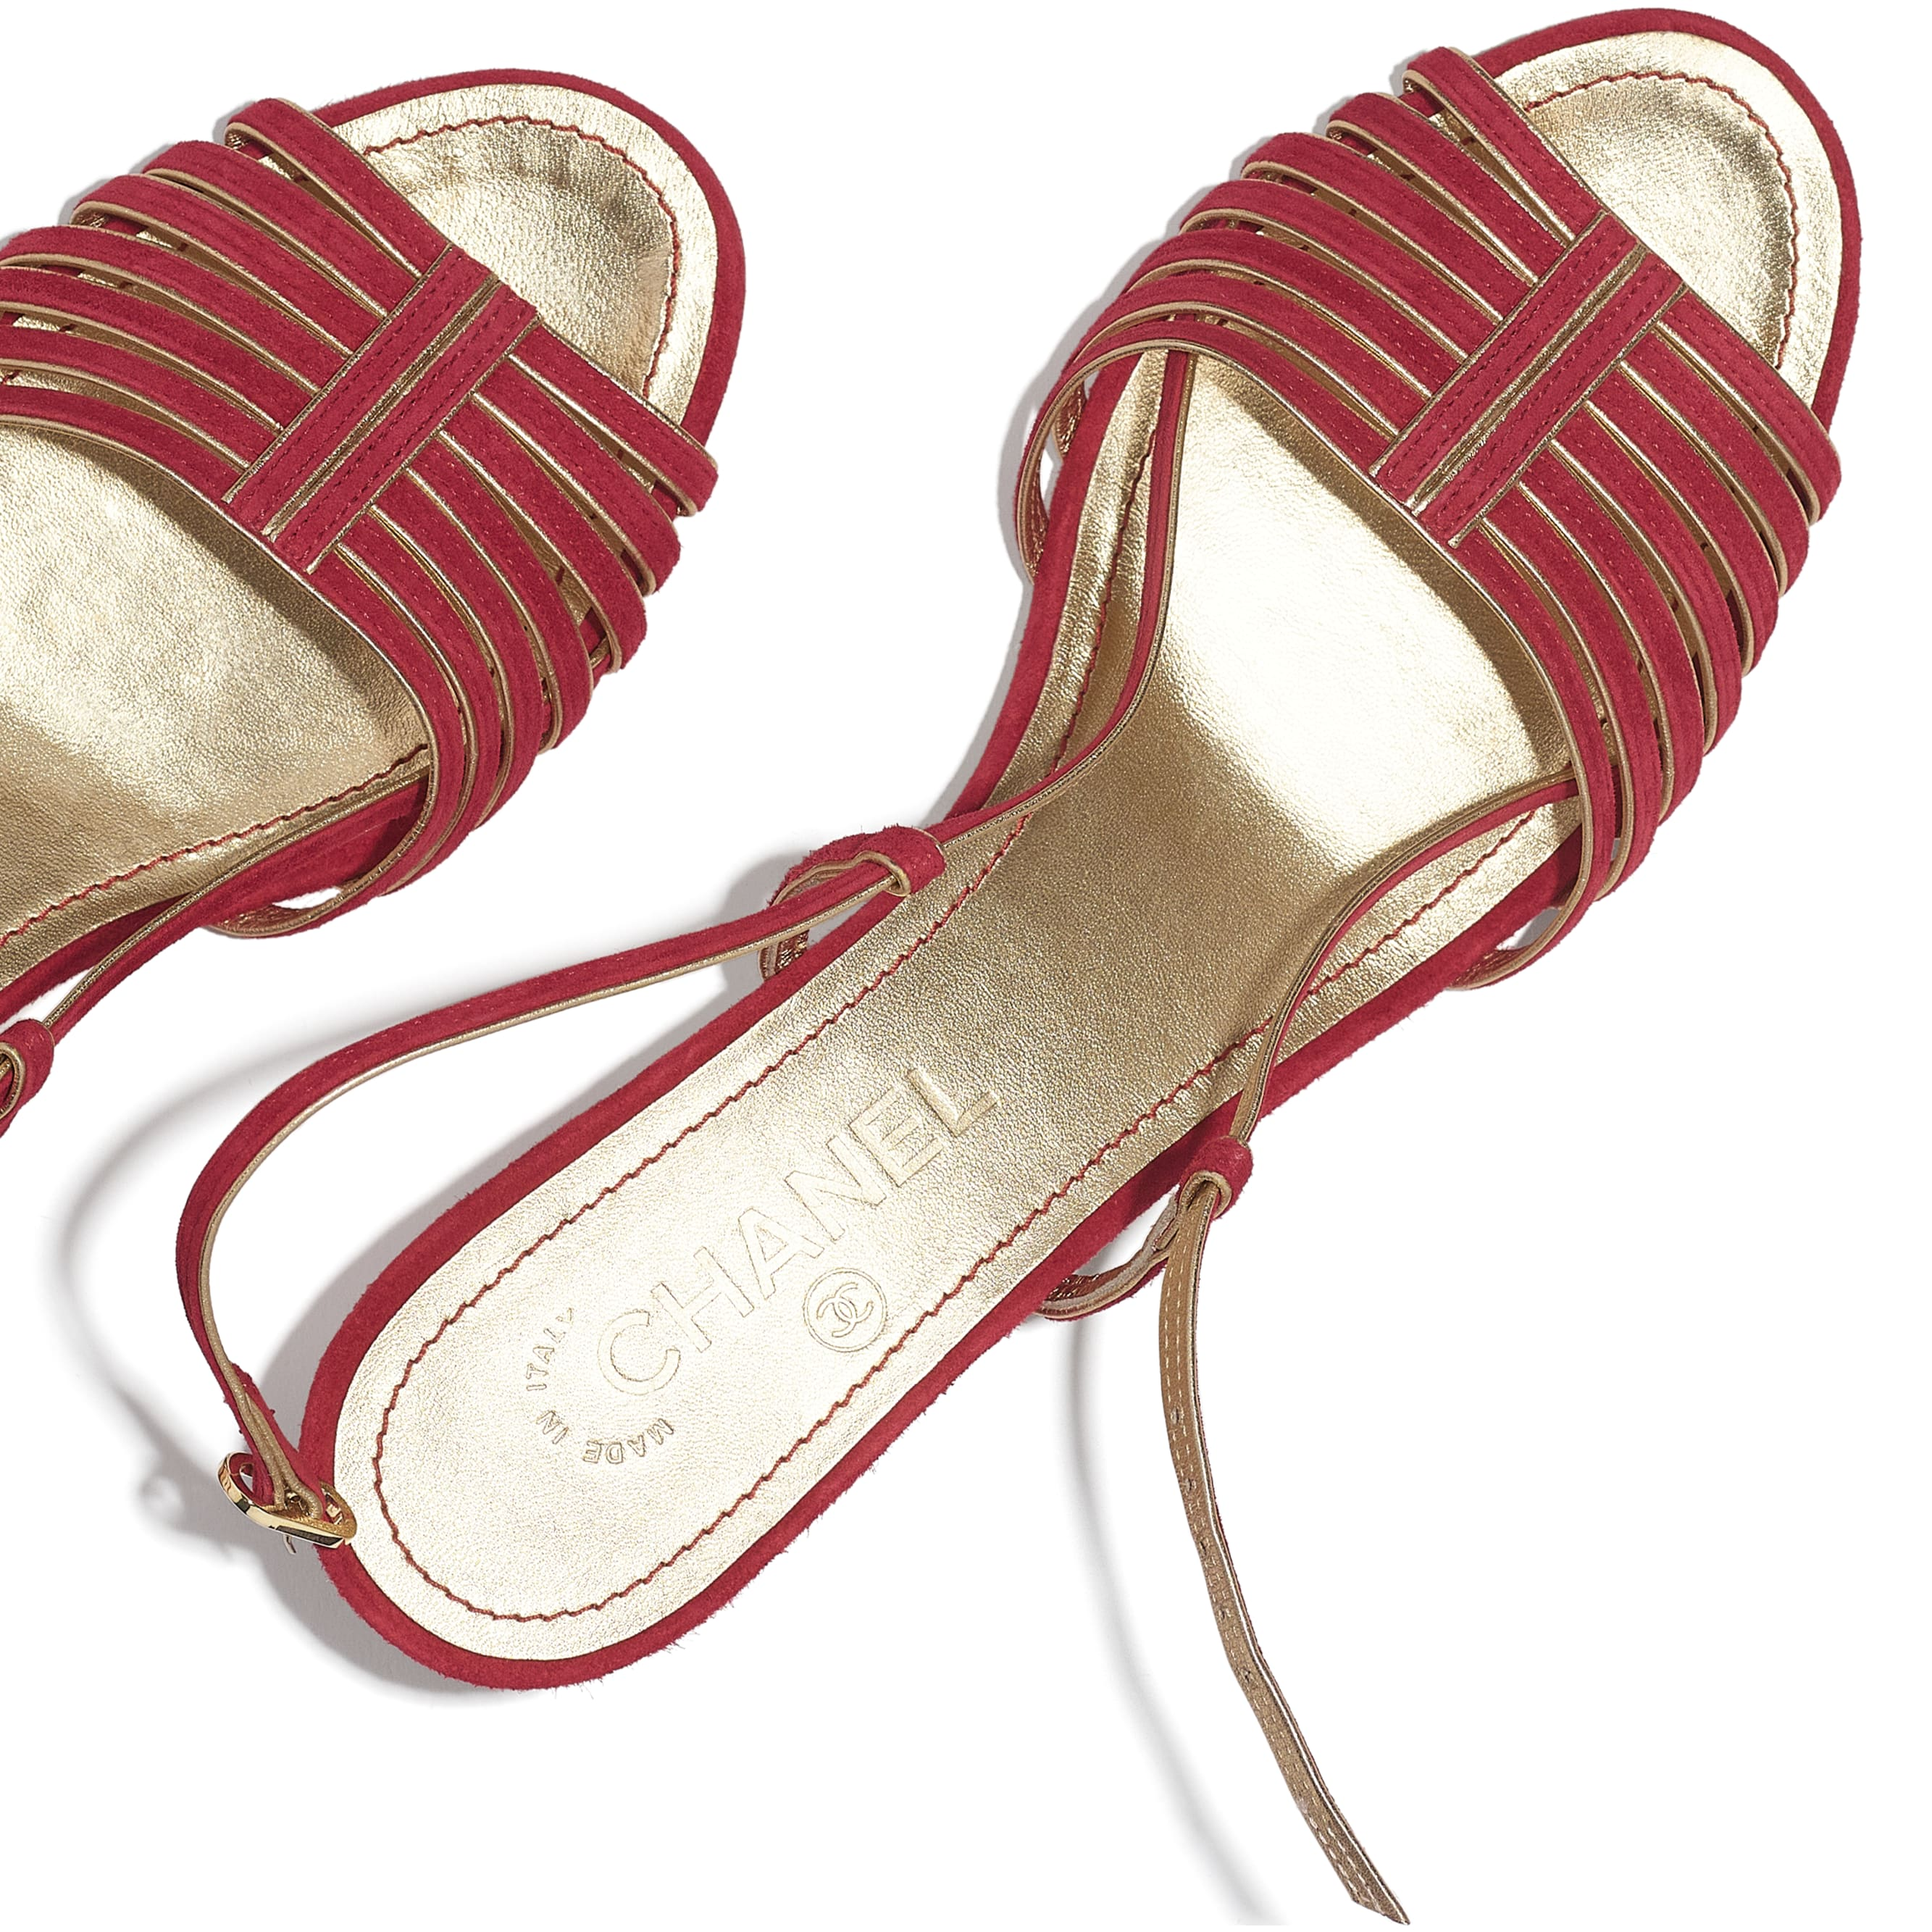 Sandals - Red & Gold - Suede Kidskin - CHANEL - Extra view - see standard sized version